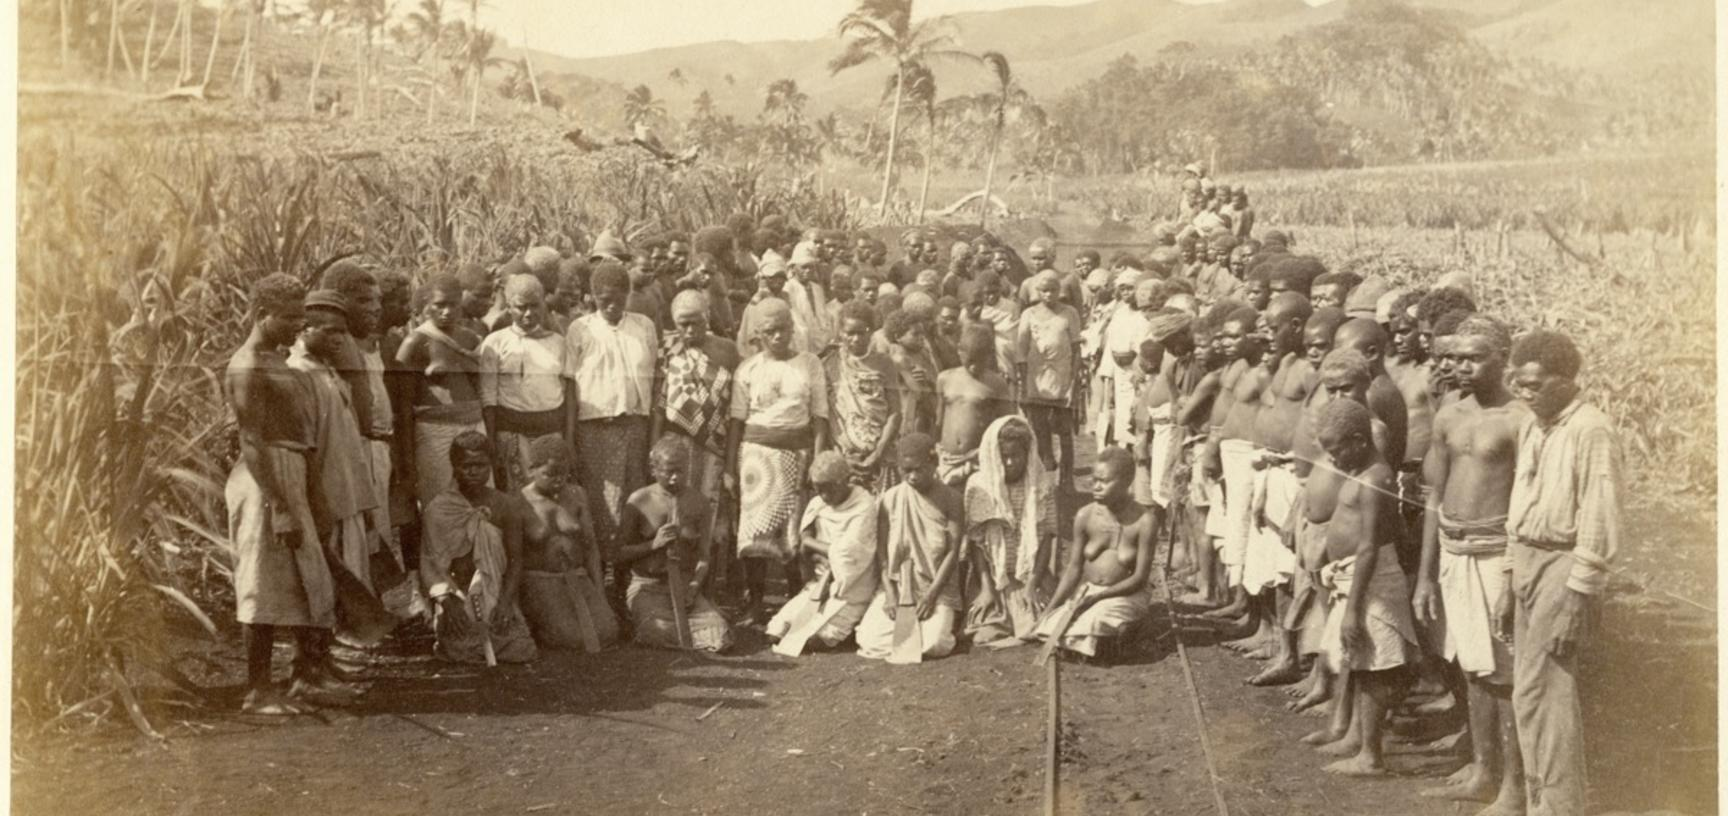 """'Muster of """"labour""""', a group portrait of agricultural workers employed in the sugar cane plantations on Viti Levu. Photograph by Alfred Burton for the Burton Brothers studio (Dunedin). Mango, Viti Levu, Fiji. 16 July 1884."""